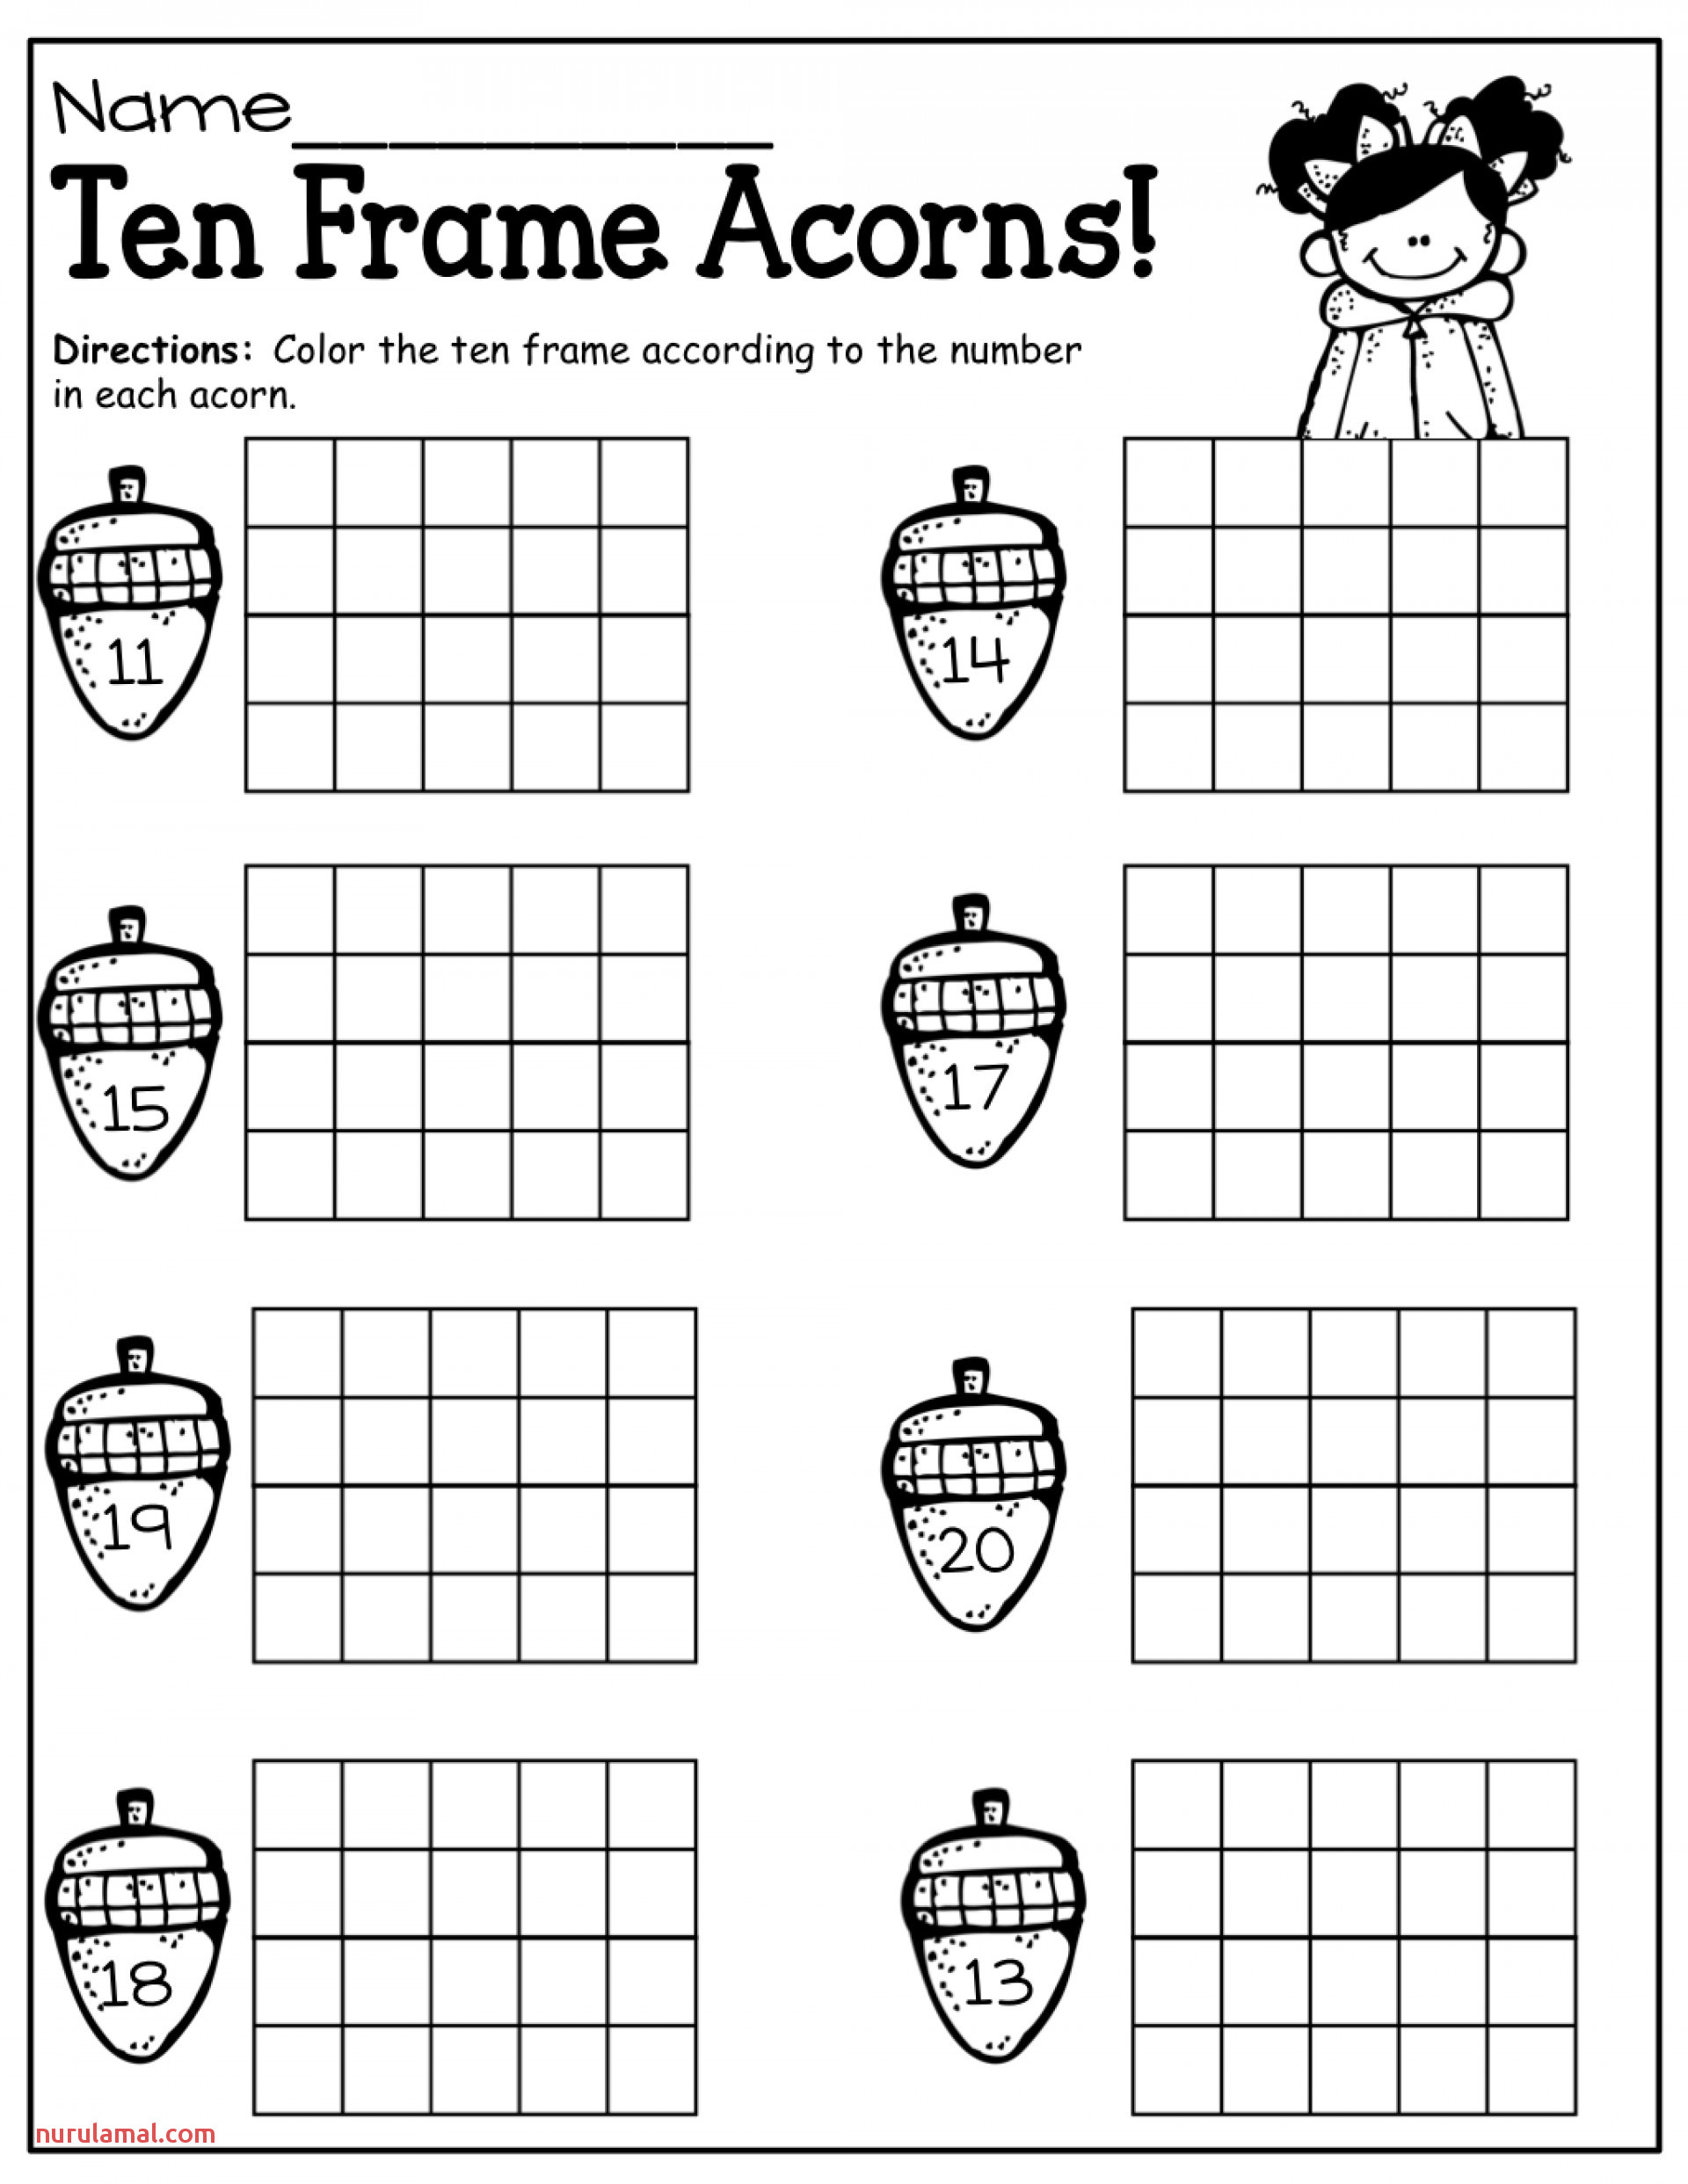 Printable French Worksheets Easy 001